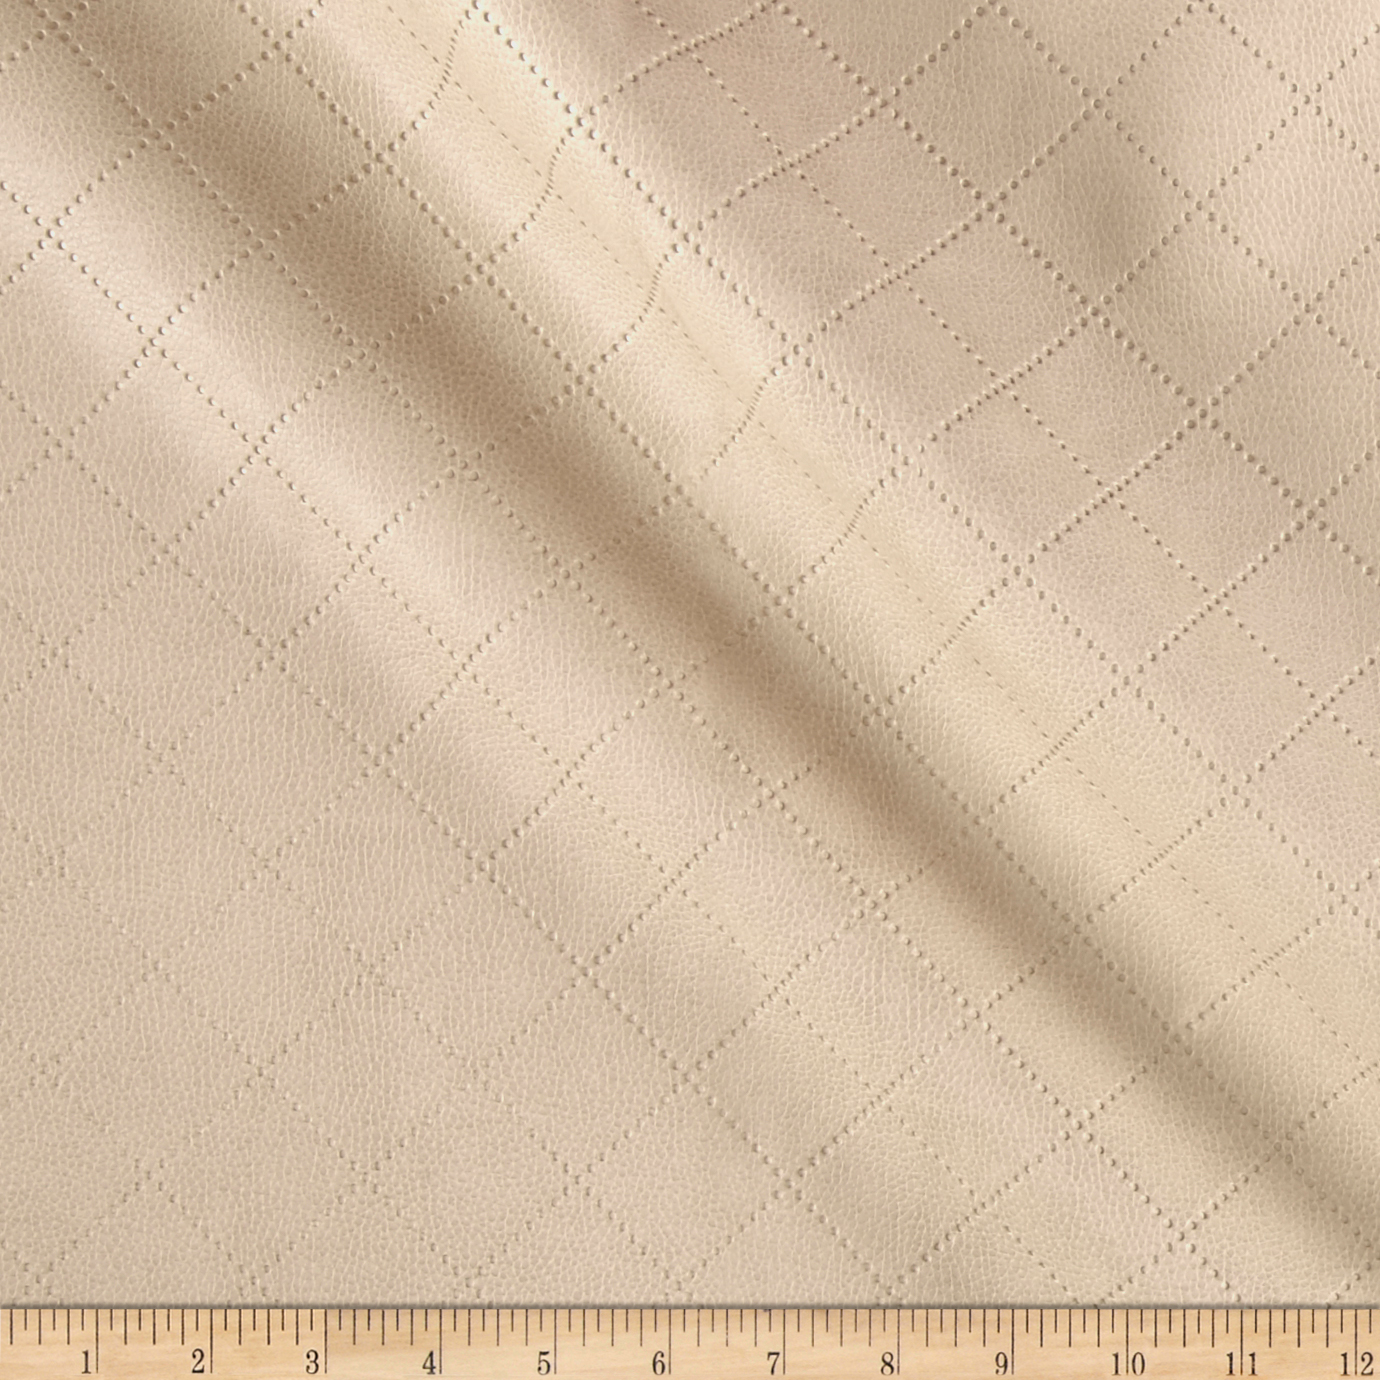 Richloom Tough Faux Leather Gorman Cream Fabric by TNT in USA